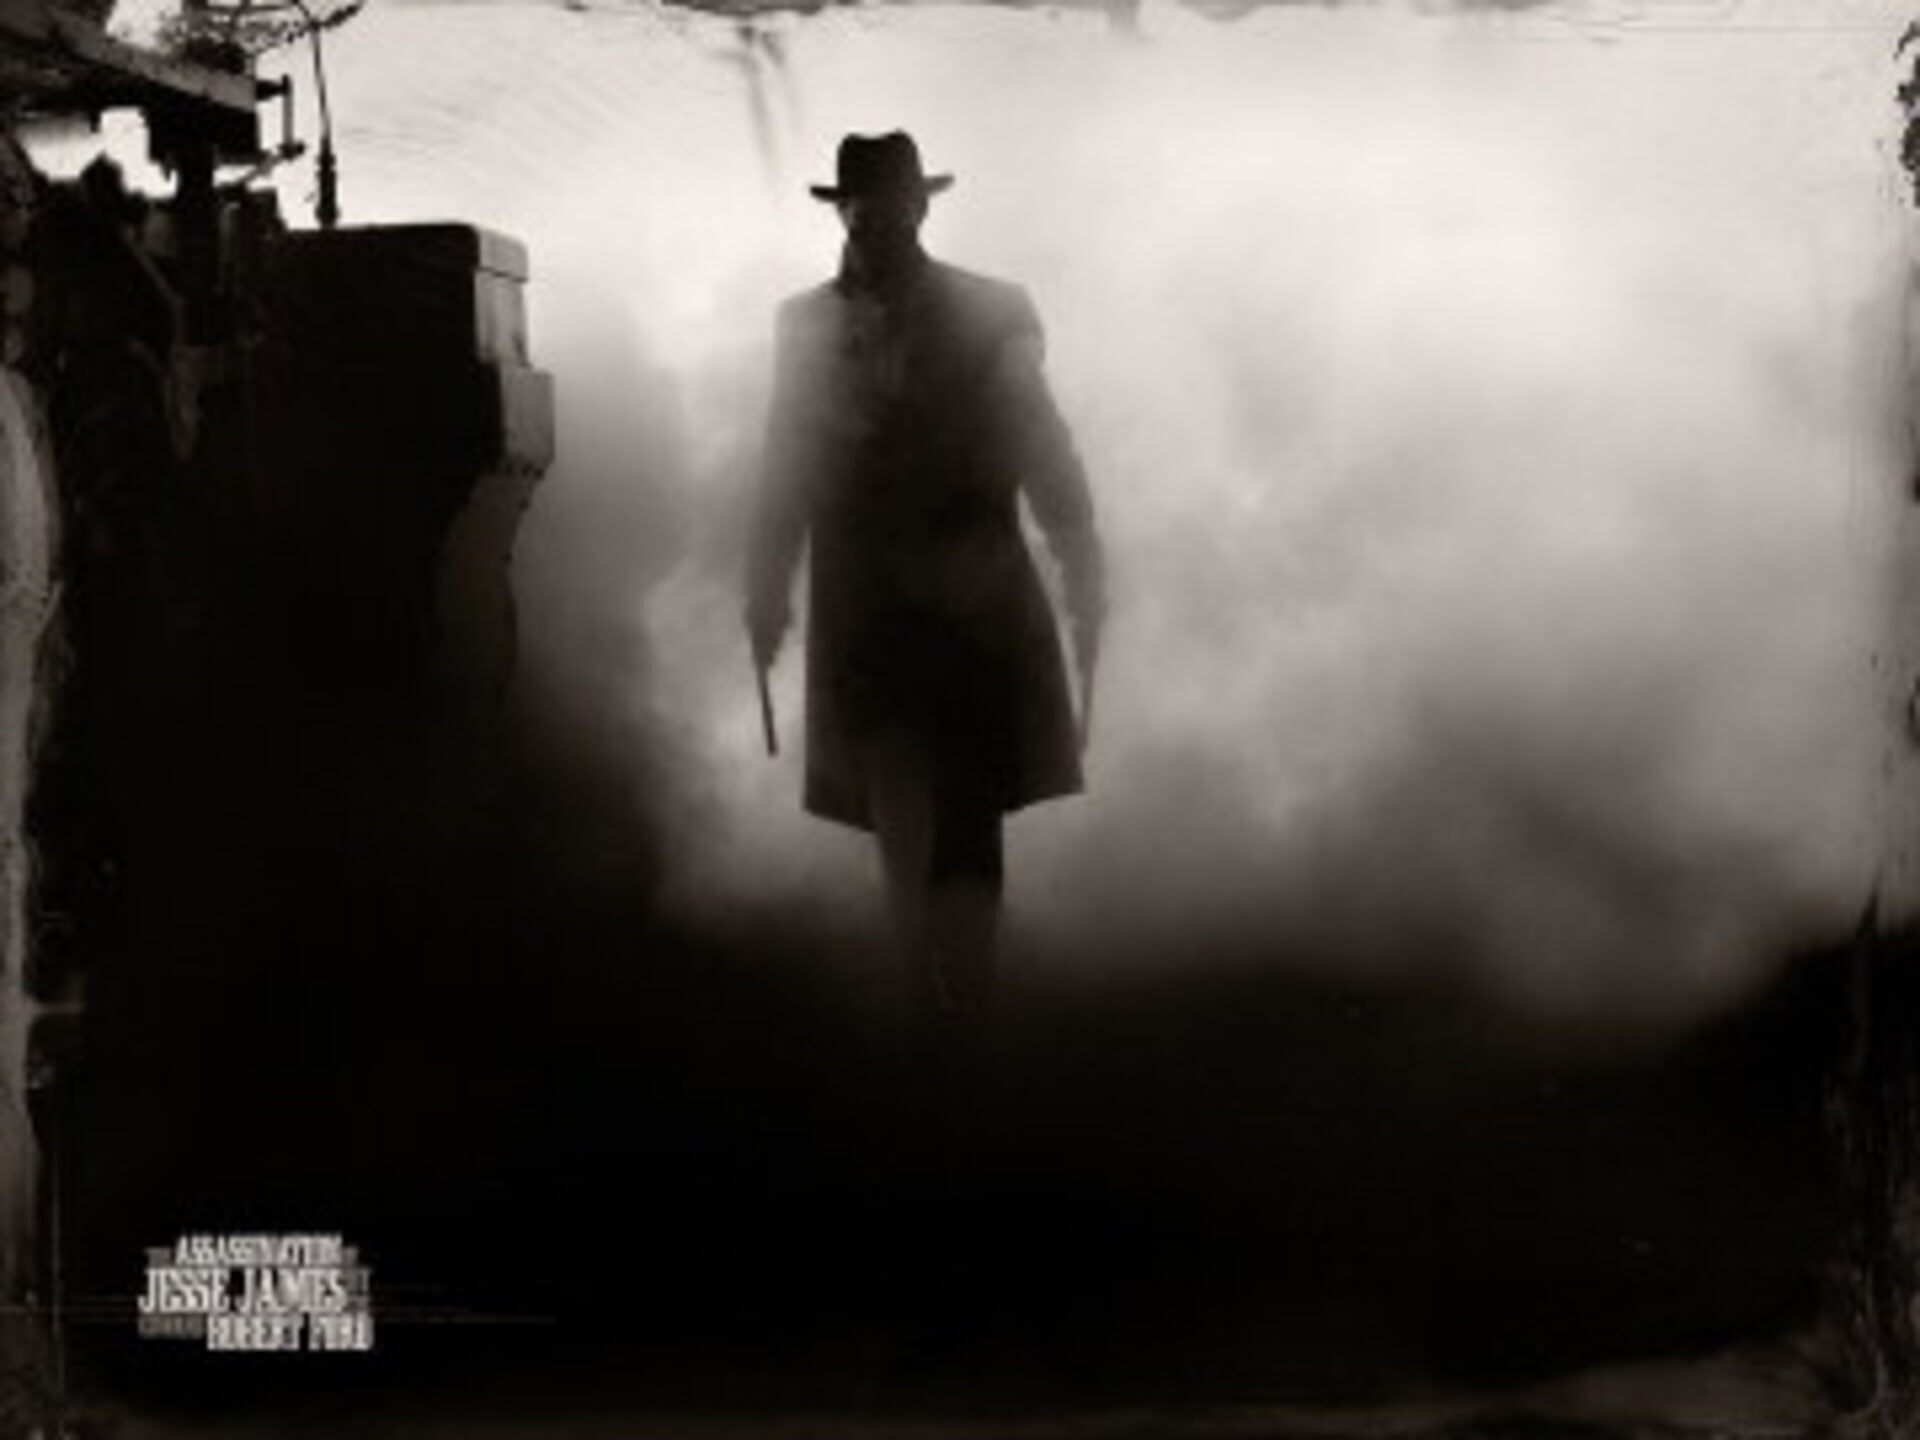 The Assassination of Jesse James by the Coward Robert Ford - Image 2